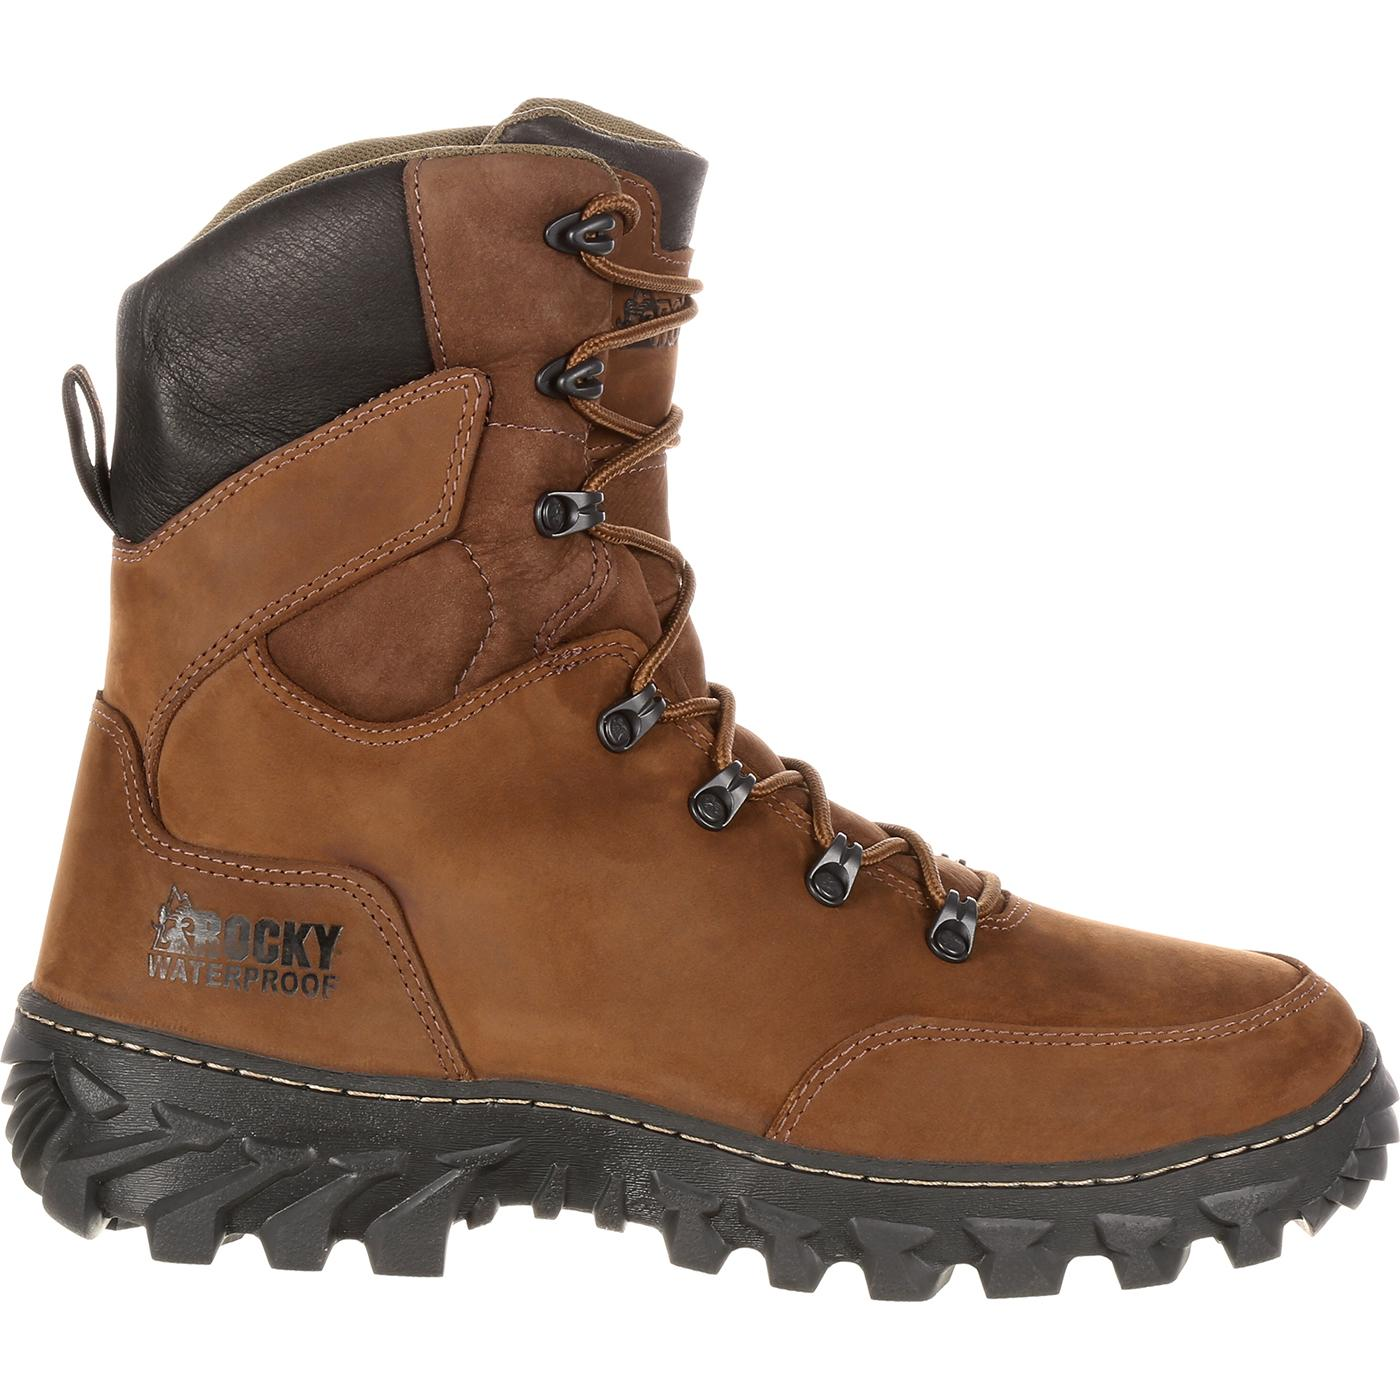 Rocky Jungle Hunter Insulated Waterproof Outdoor Boots